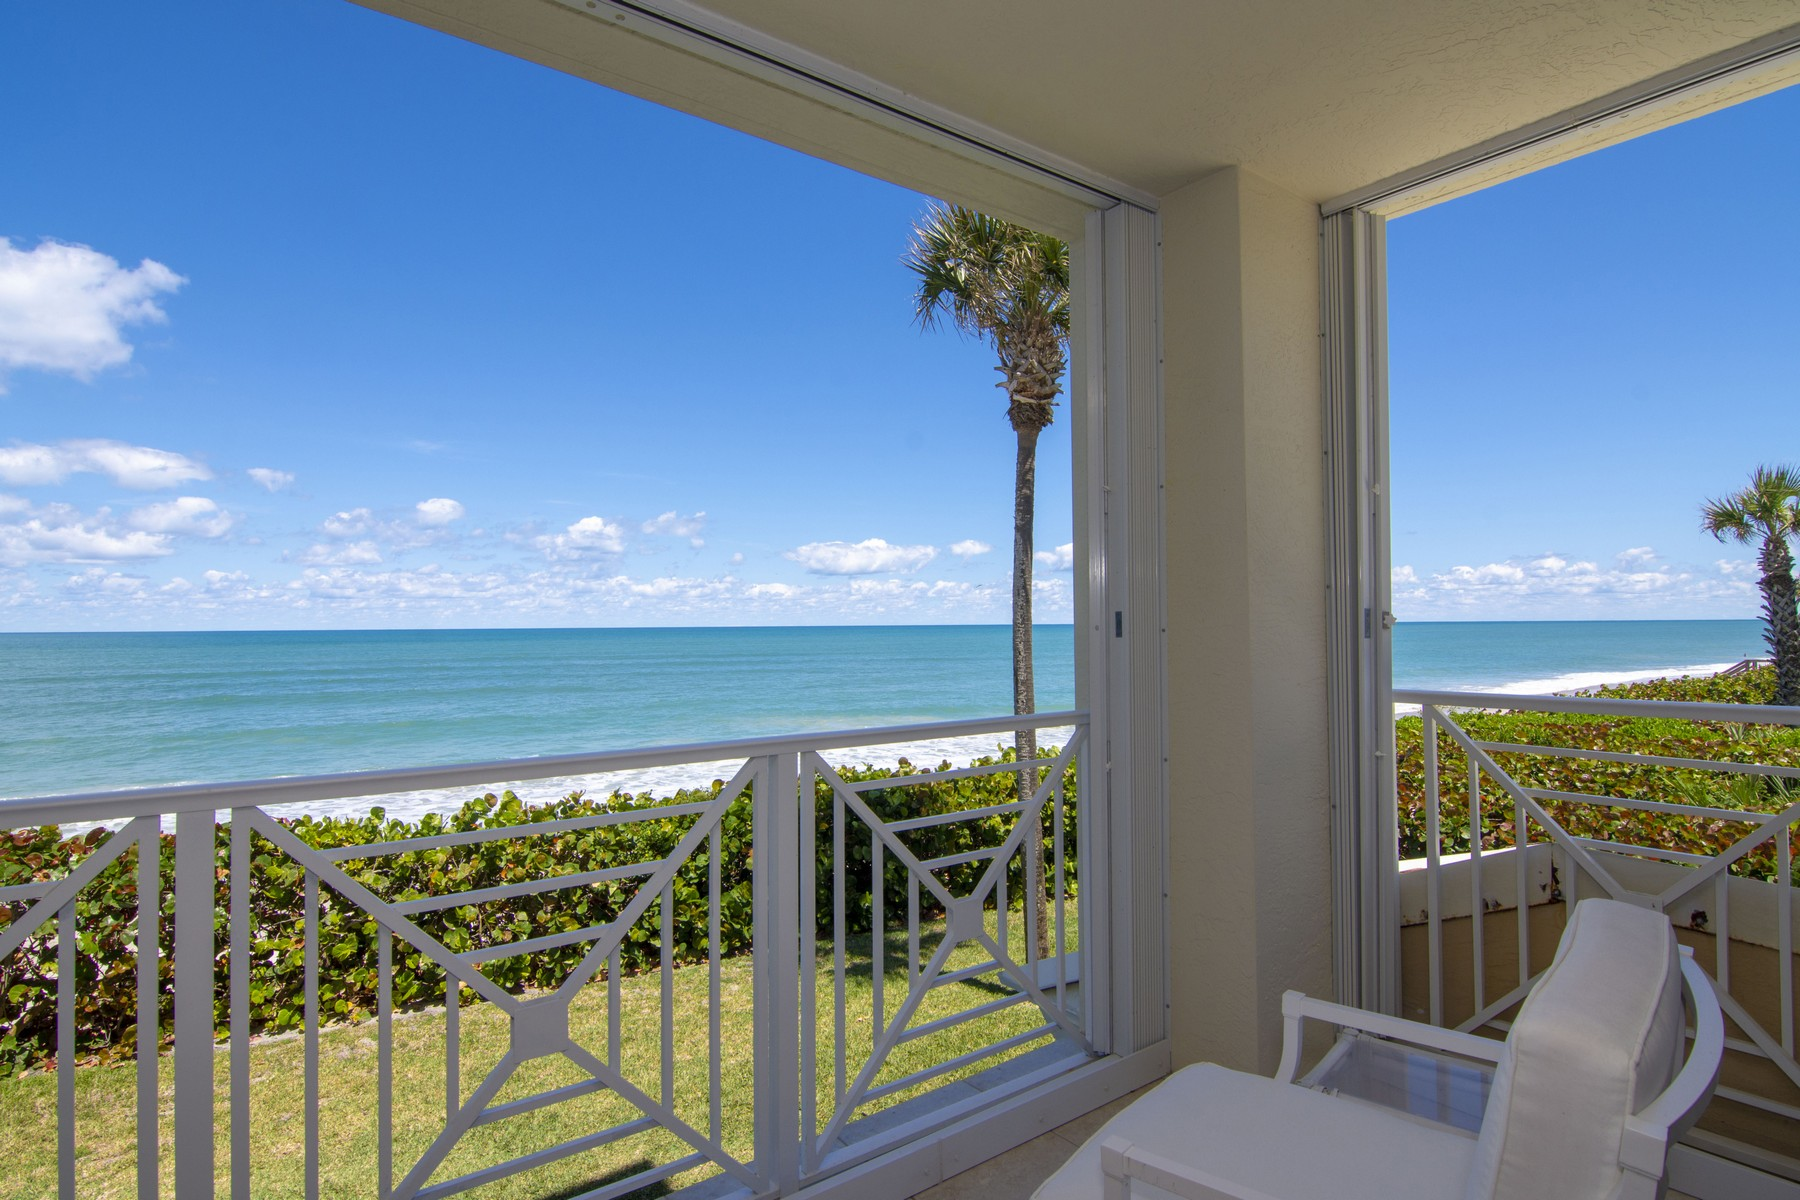 Property por un Venta en Spectacular Oceanfront Condo 8890 N SEA OAKS WAY #102 Vero Beach, Florida 32963 Estados Unidos